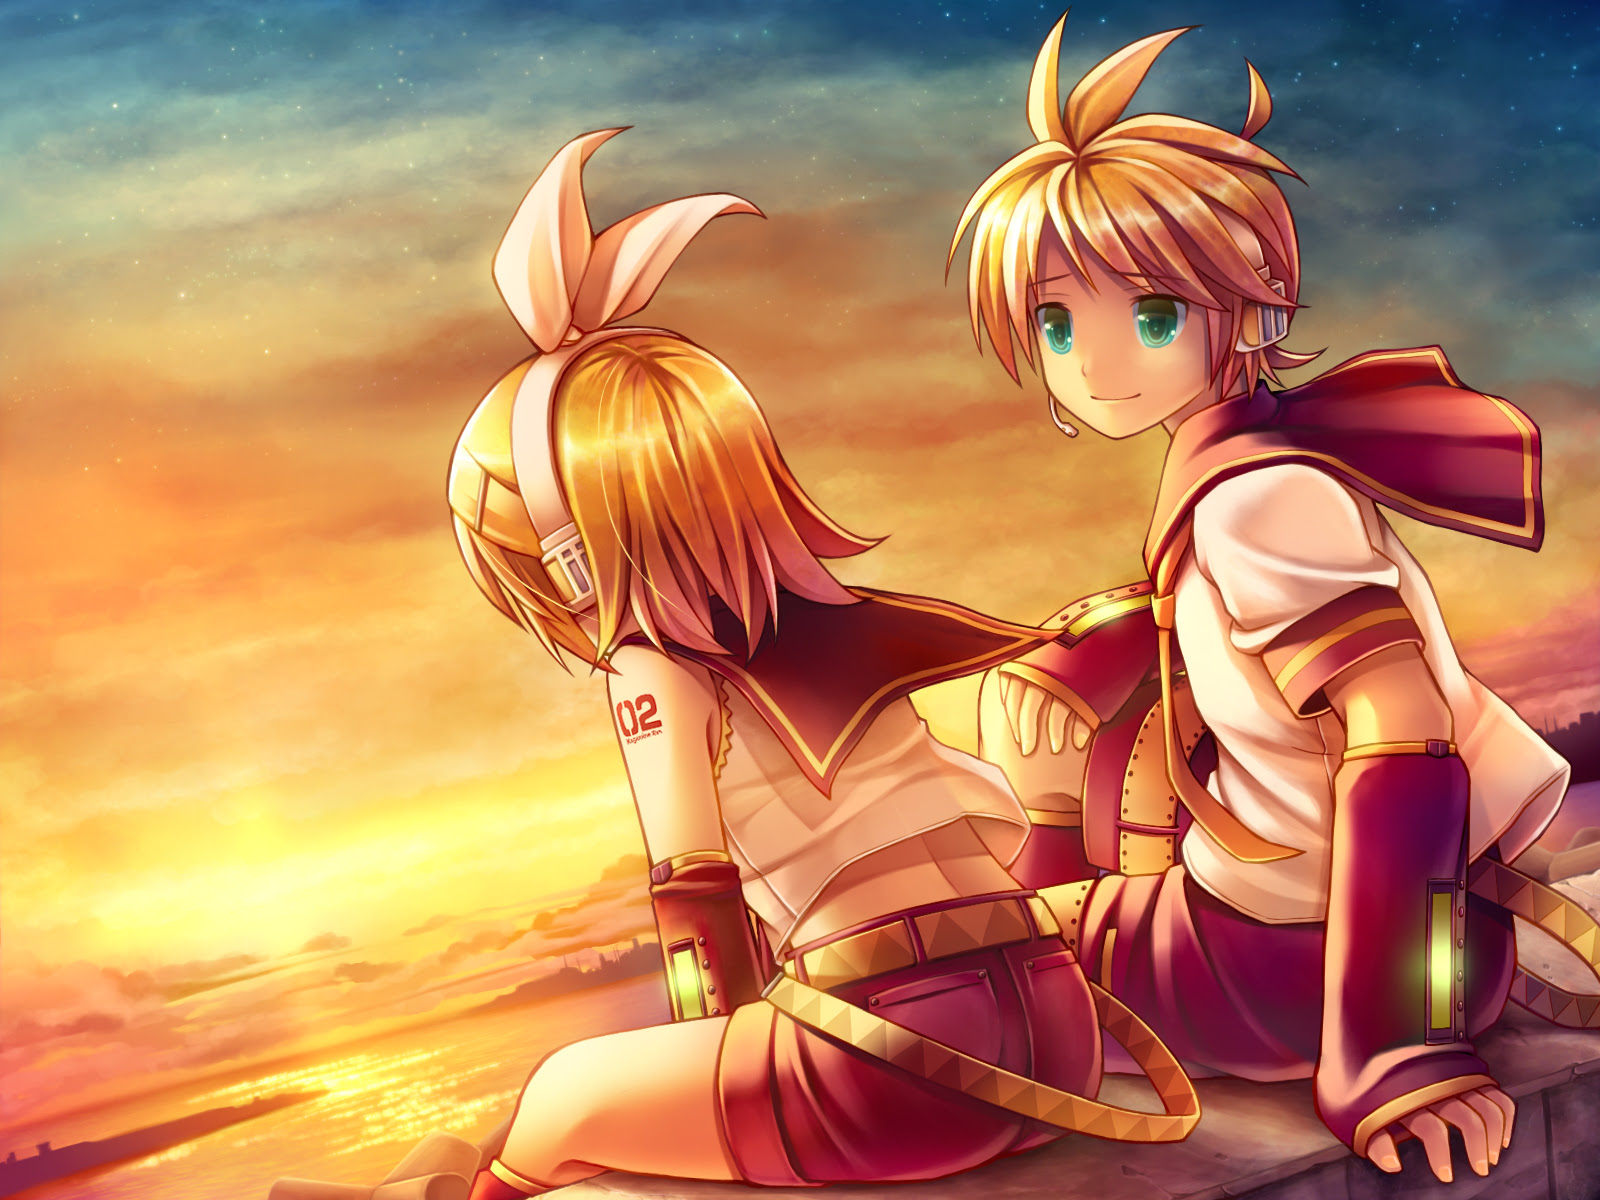 Anime - Vocaloid  - Kagamine Rin - Kagamine Len - Blonde Hair - Aqua Eyes - Headphones - Sunset - Sky - Sea Papel de Parede